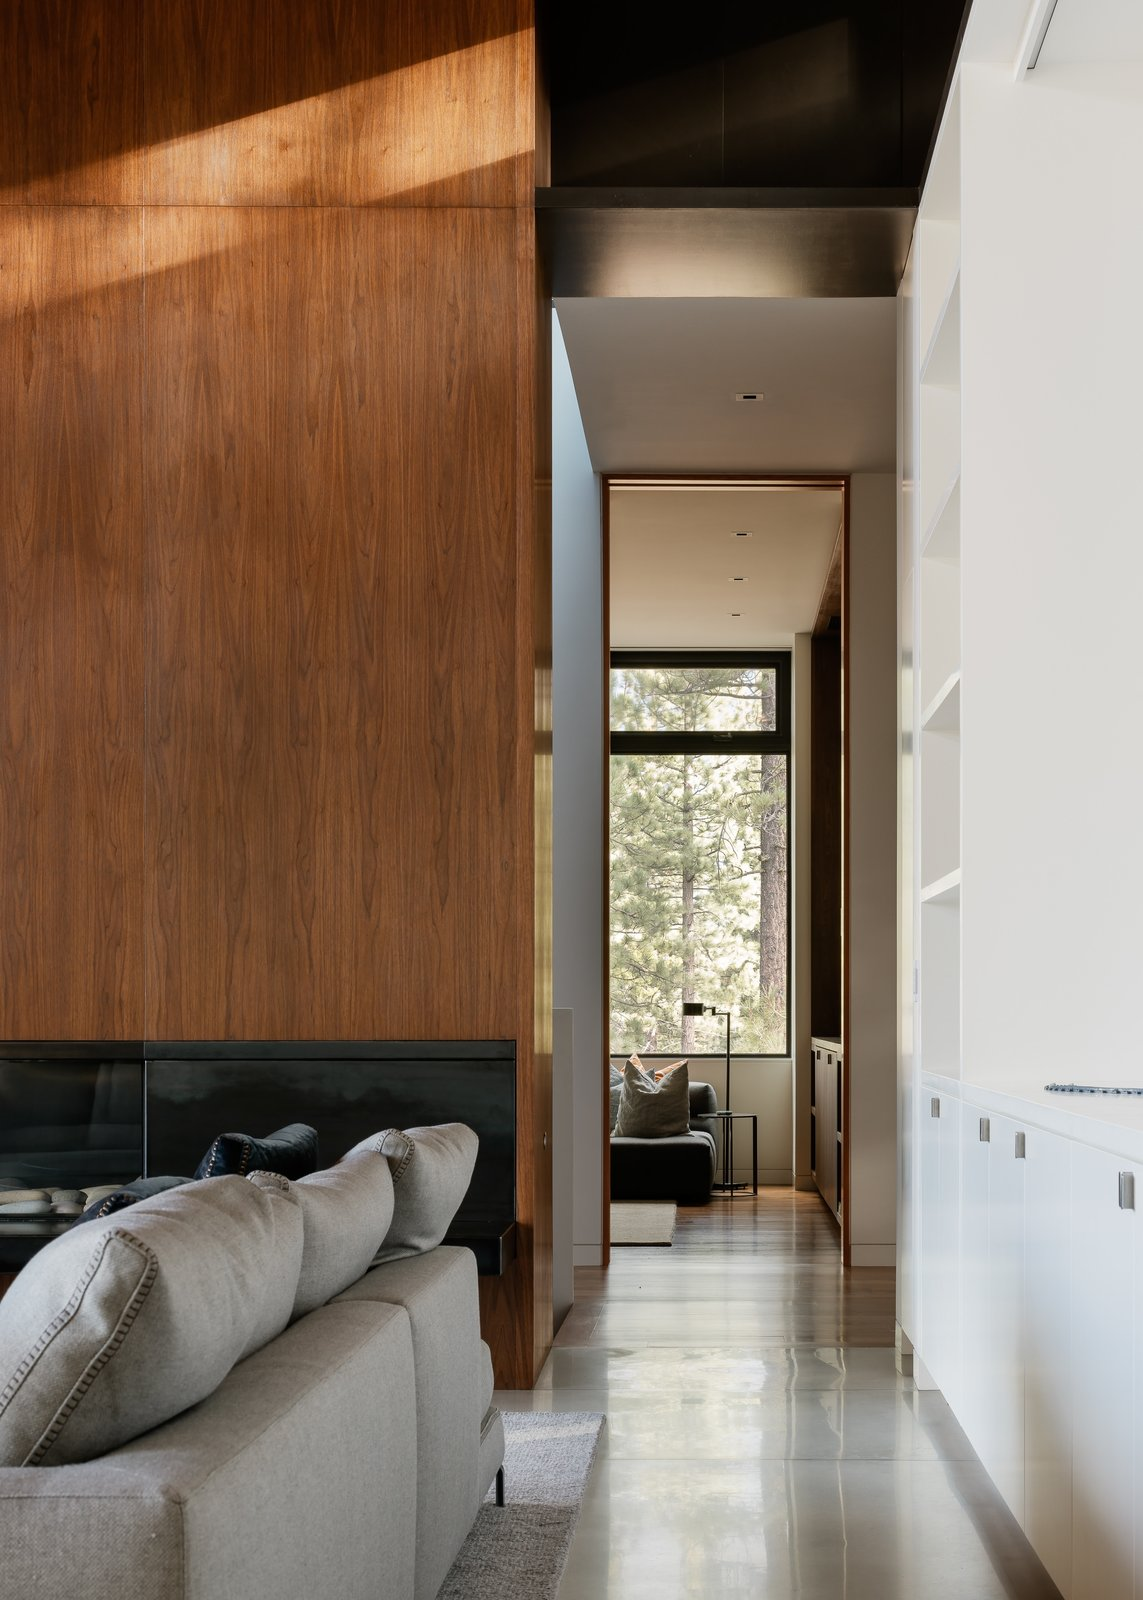 Living Room Hallway Tagged: Hallway and Concrete Floor.  Martis Camp Residence 1 by John Maniscalco Architecture